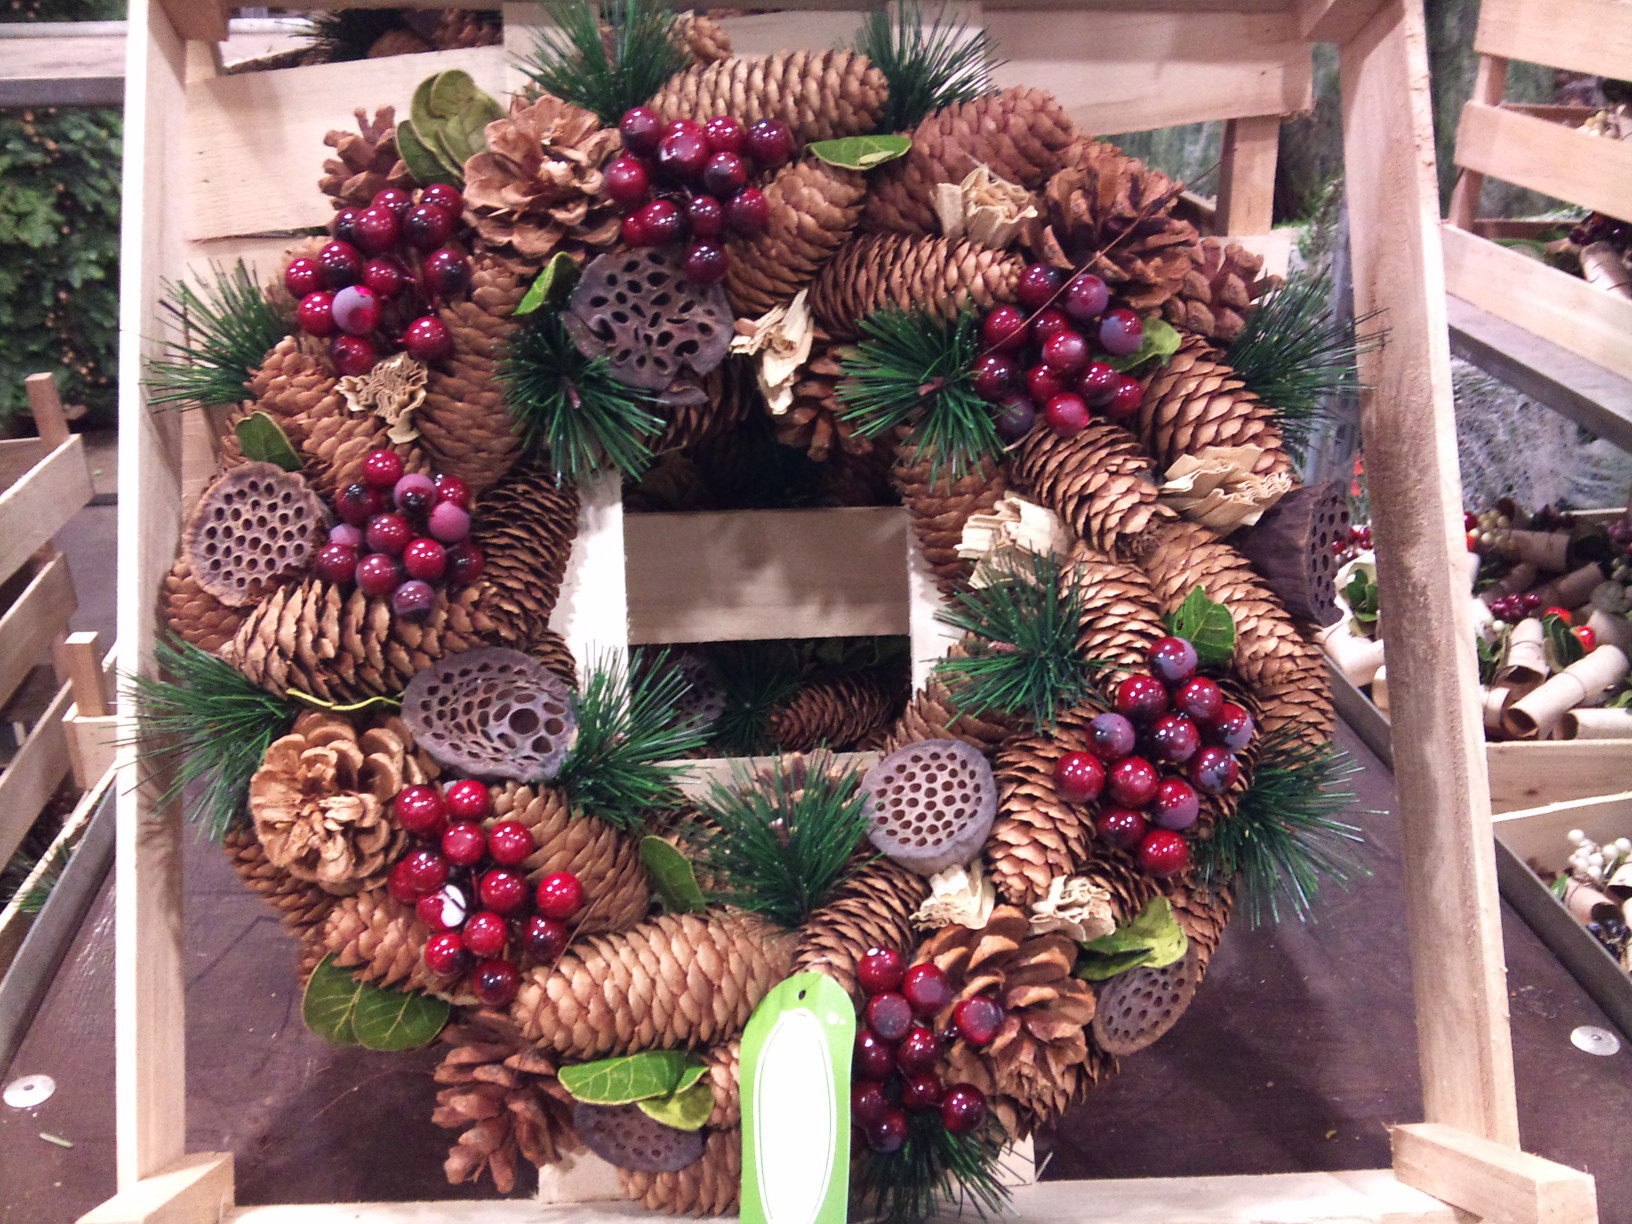 2012-12-Bloomfield-wreath-3.jpg?mtime=20171003154041#asset:12622